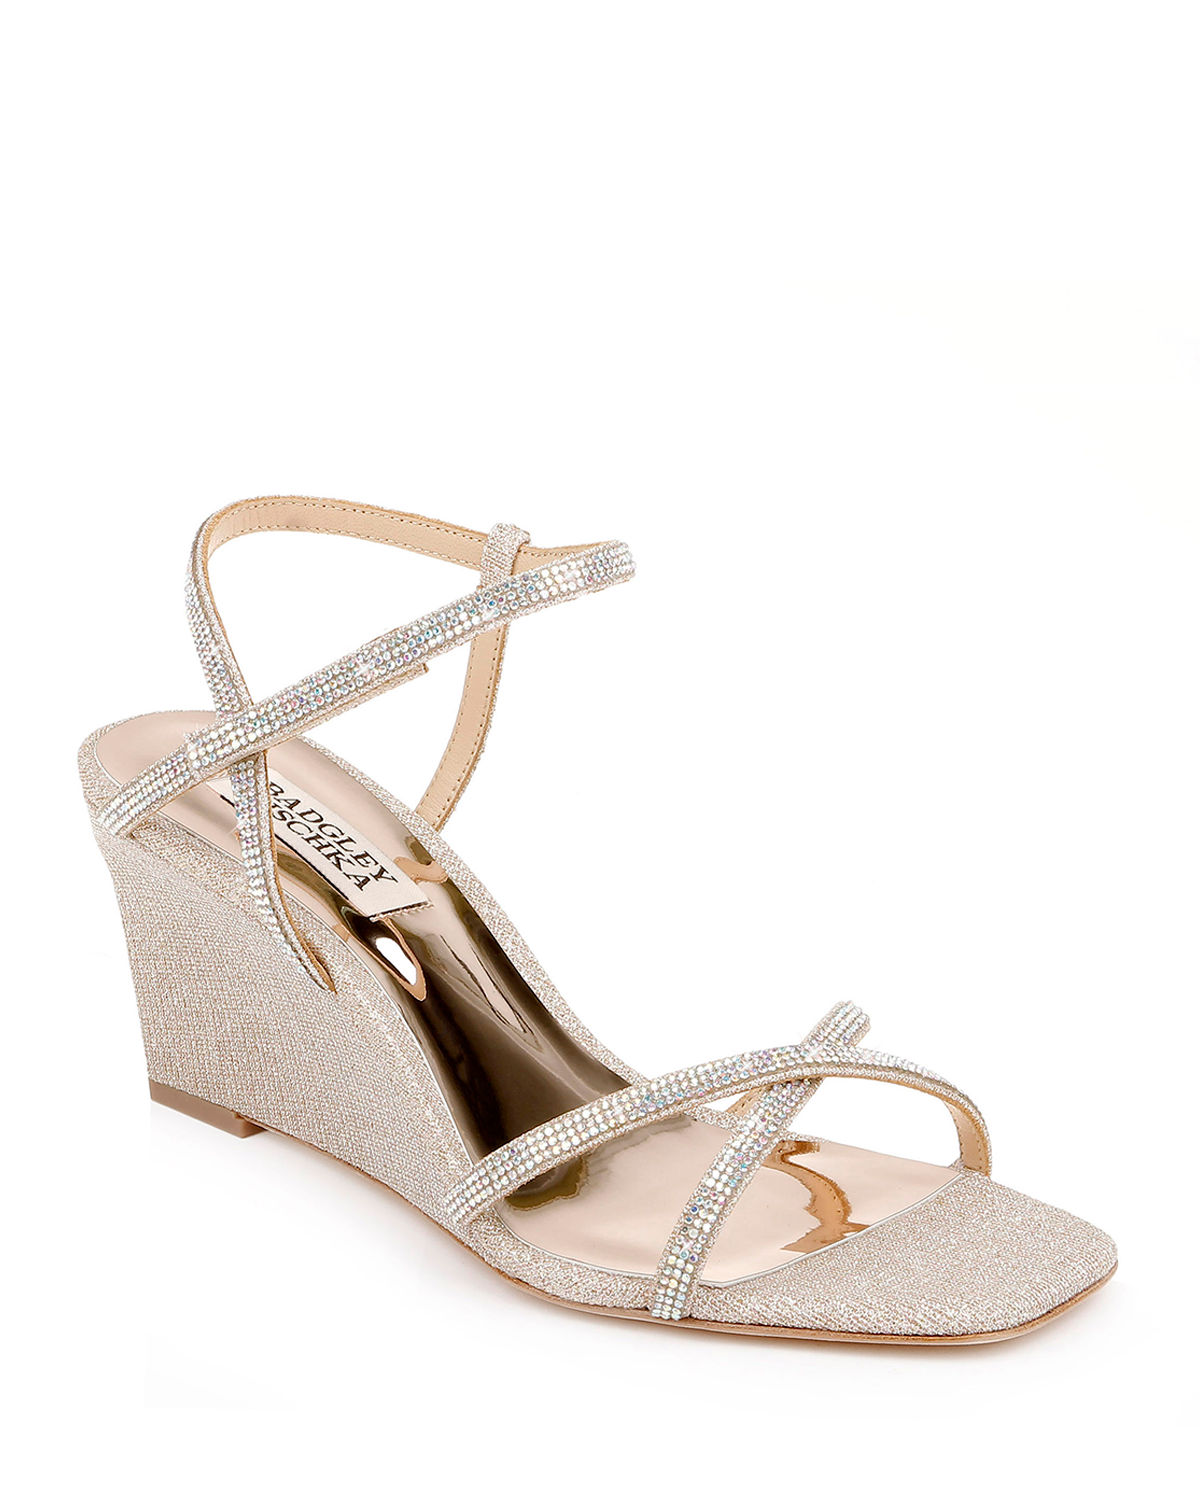 Badgley Mischka REAGAN STRASS CRISSCROSS WEDGE SANDALS